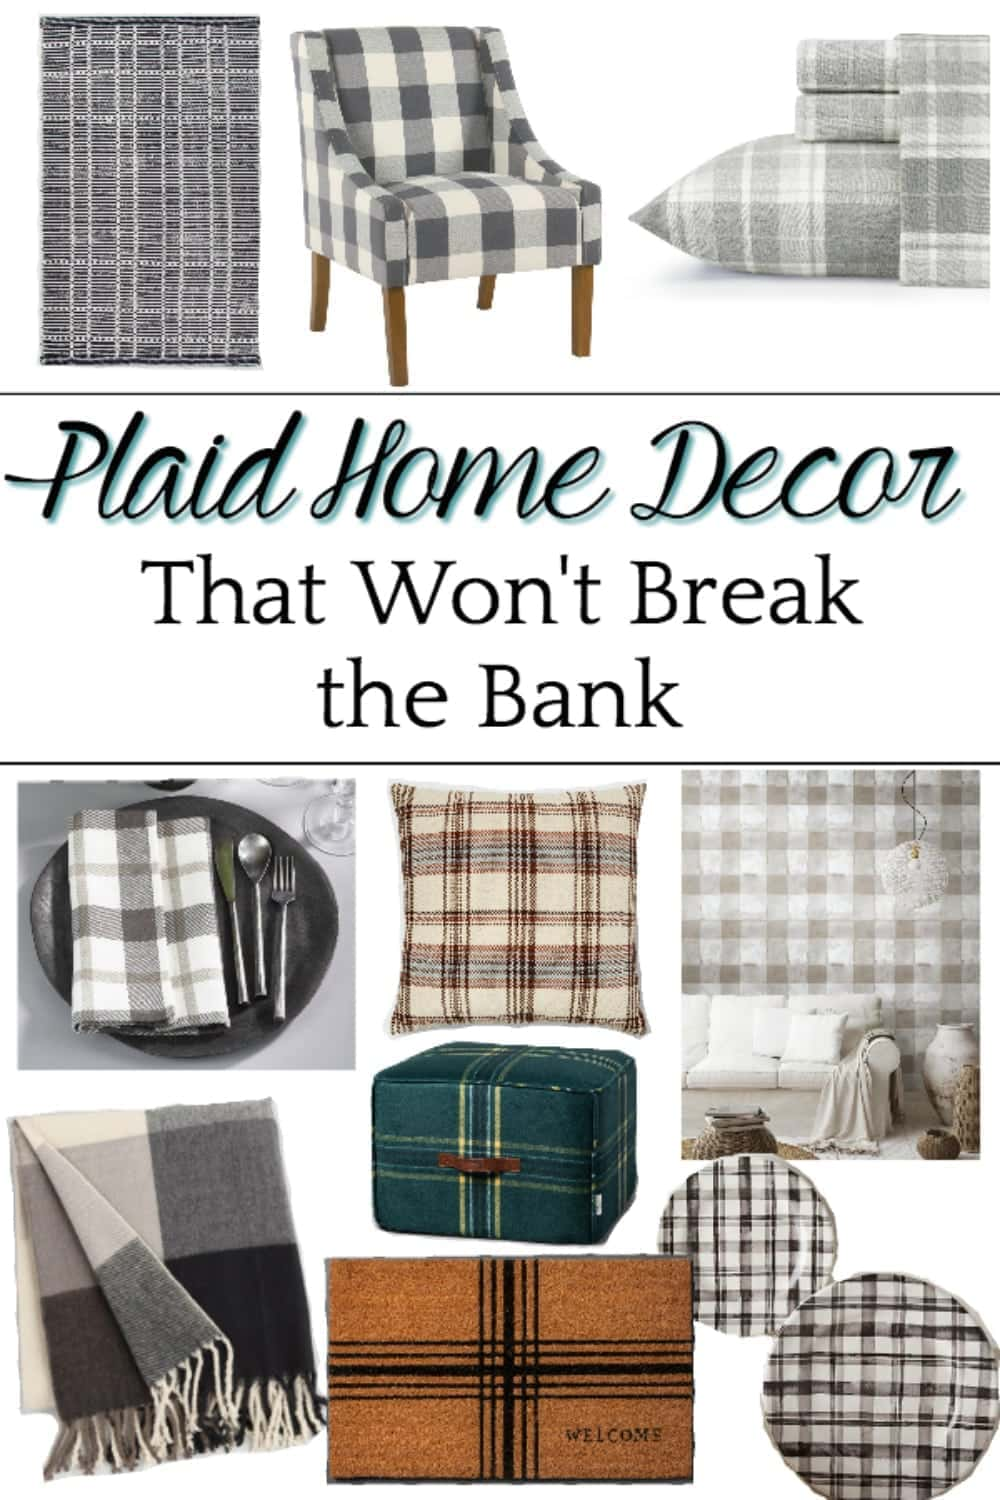 A shopping guide with some of the best resources for plaid home decor to cozy up a room for fall and winter on a budget. #plaidhomedecor